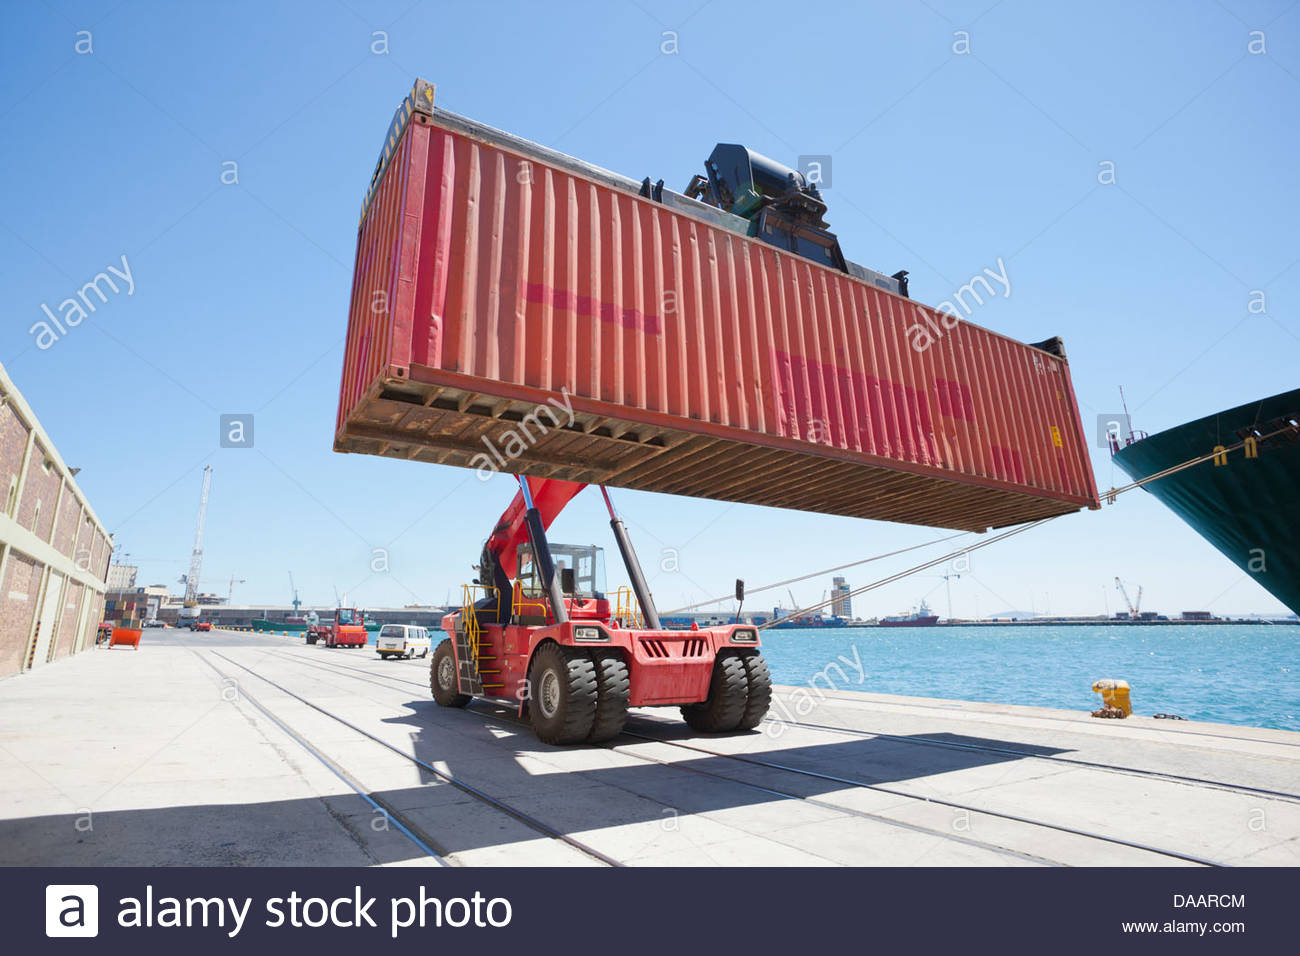 Mobile crane moving container ship at commercial dock Stock Photo